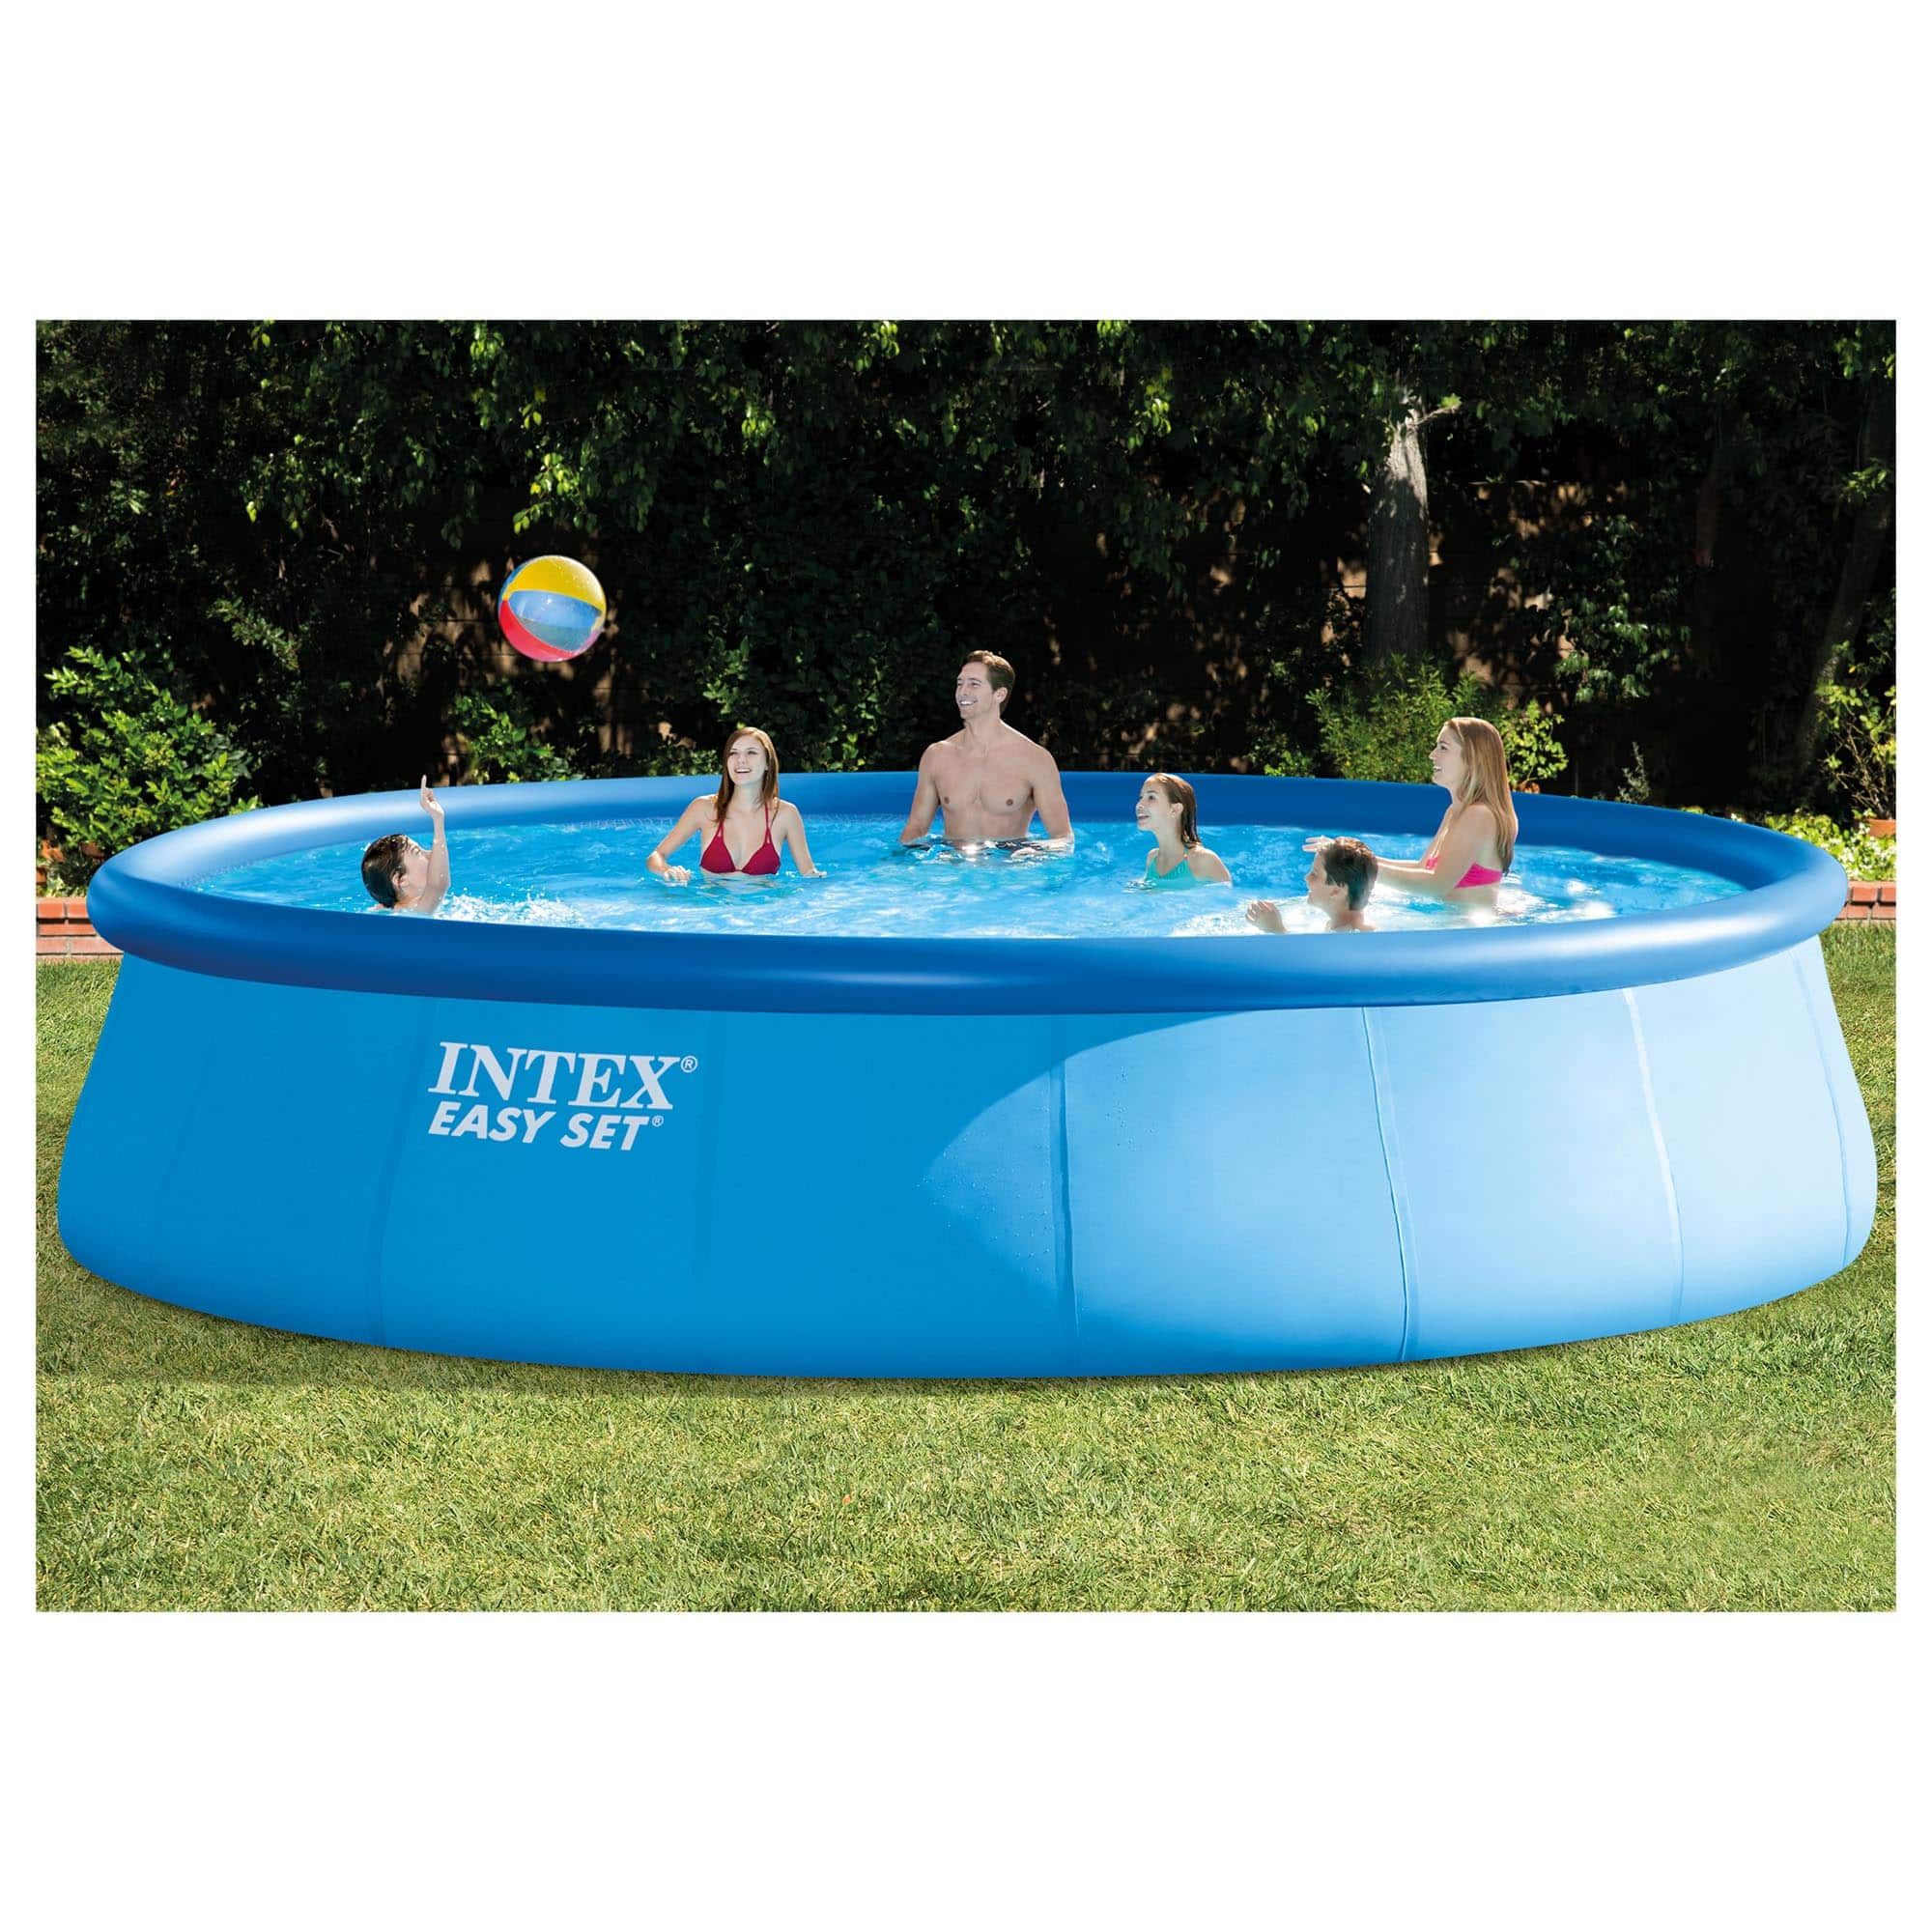 "Intex 18' x 48"" Easy Set Above Ground Pool with Filter Pump $349.99"